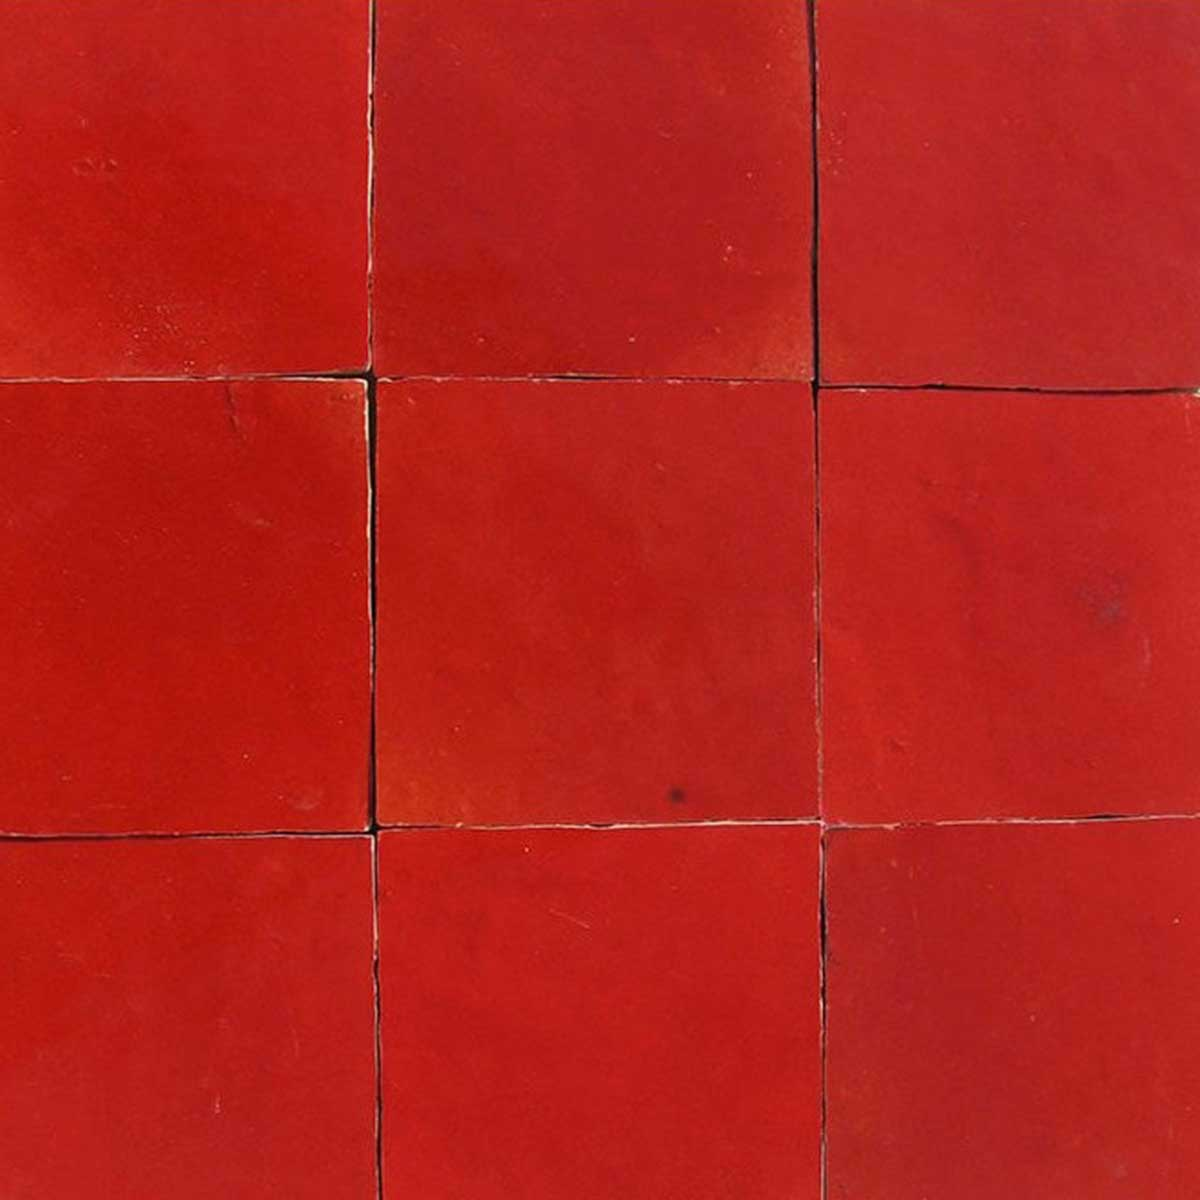 Zellige C06 of the Zellige Tile Collection from TassemiT Tile | Authentic Moroccan Tile